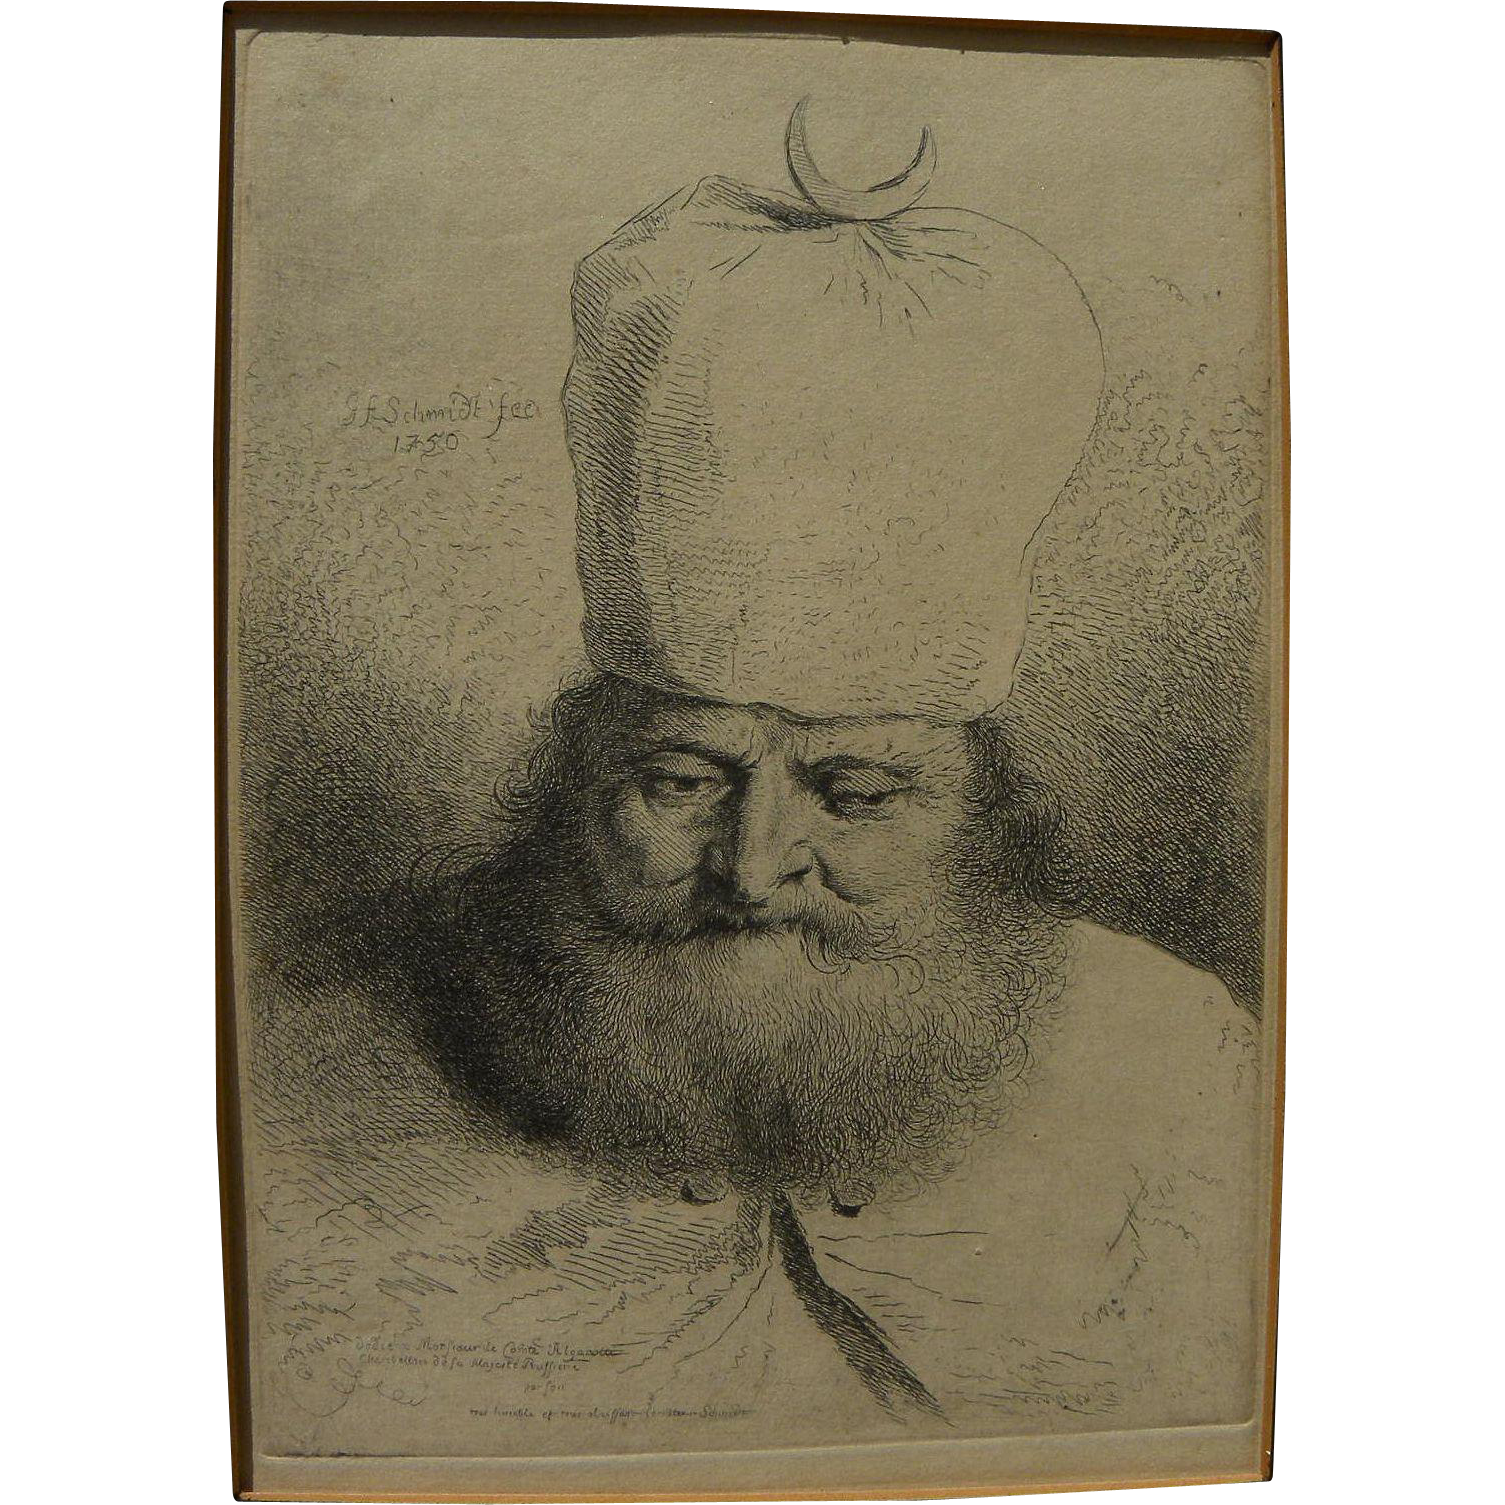 "GEORG FRIEDRICH SCHMIDT (1712-1775) fine early engraving in style of Rembrandt ""Der Bartige Orientale"" by noted German engraver"